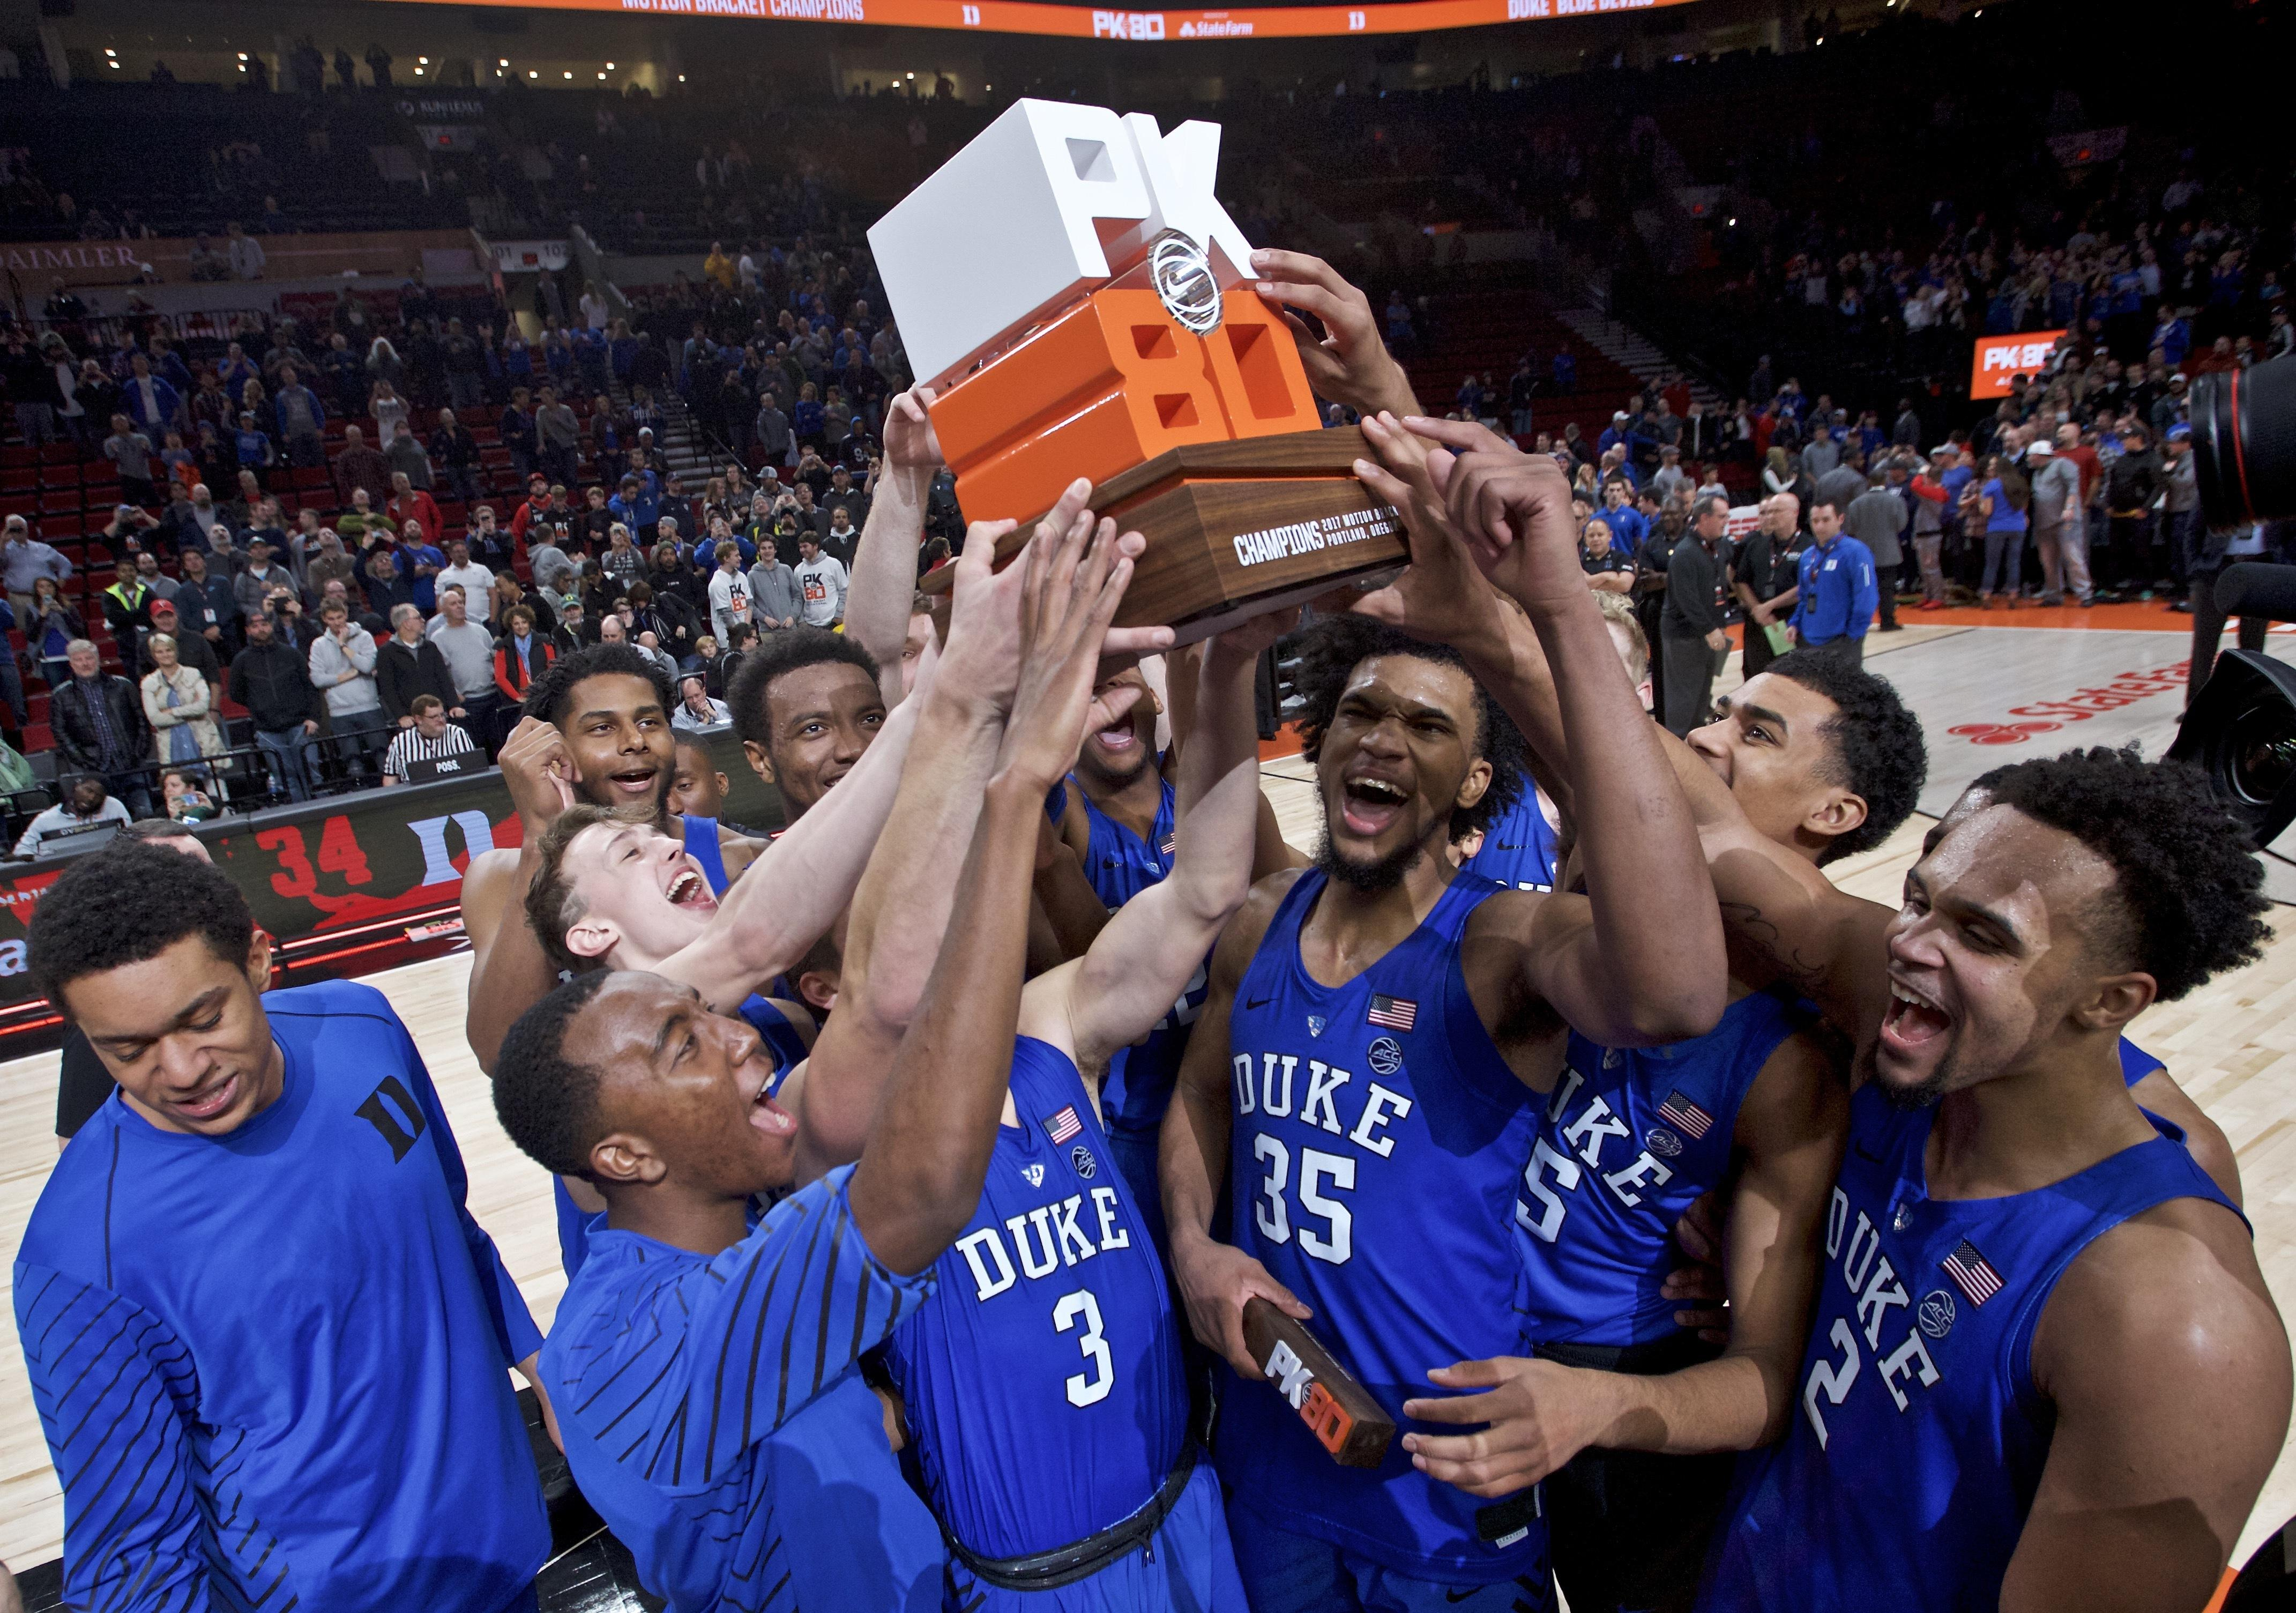 Duke holds up the championship trophy after an NCAA college basketball game against Florida in the